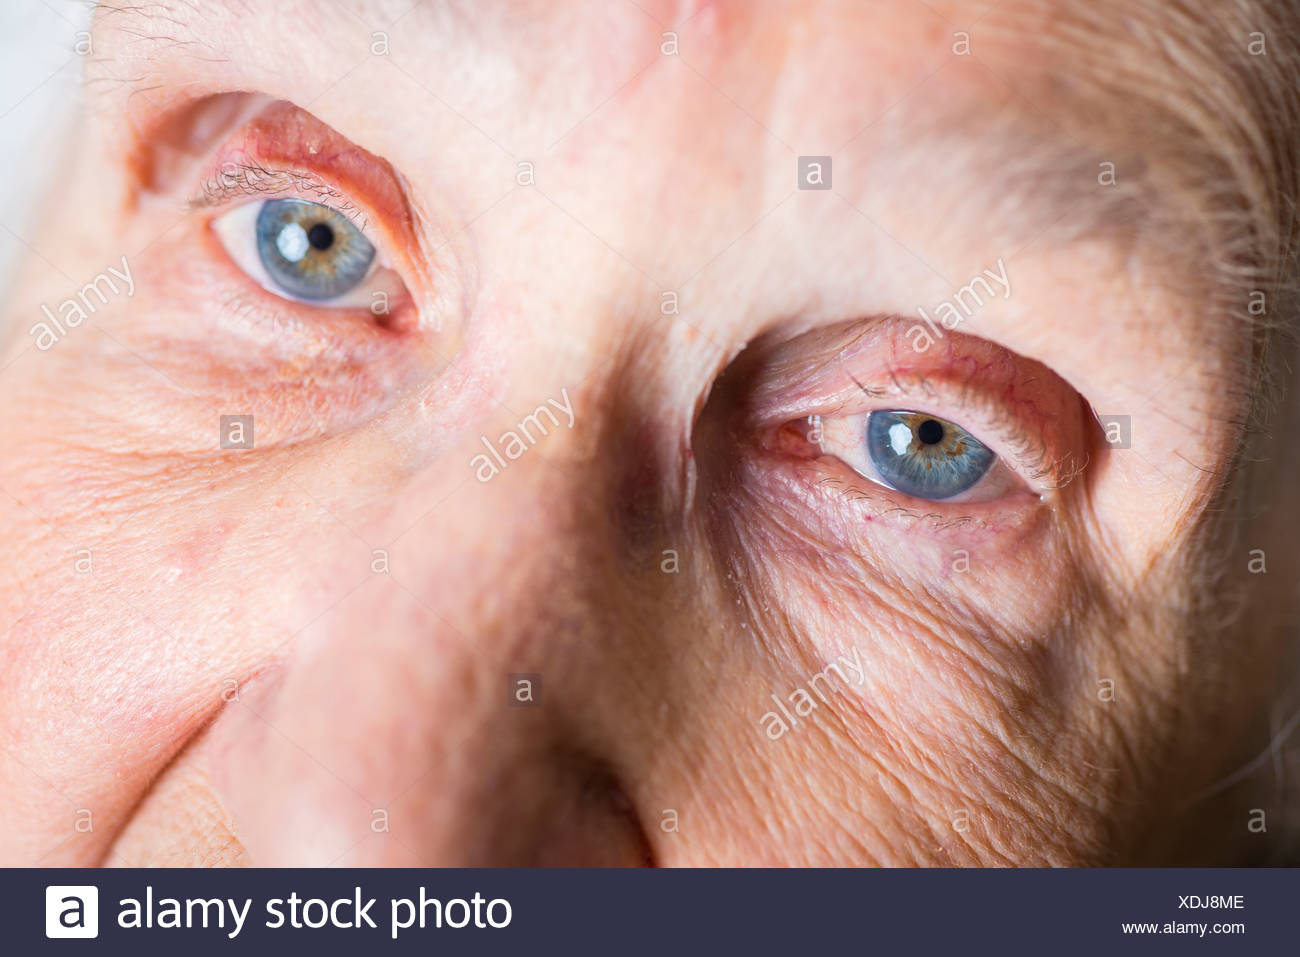 Part of face of aged woman - Stock Image